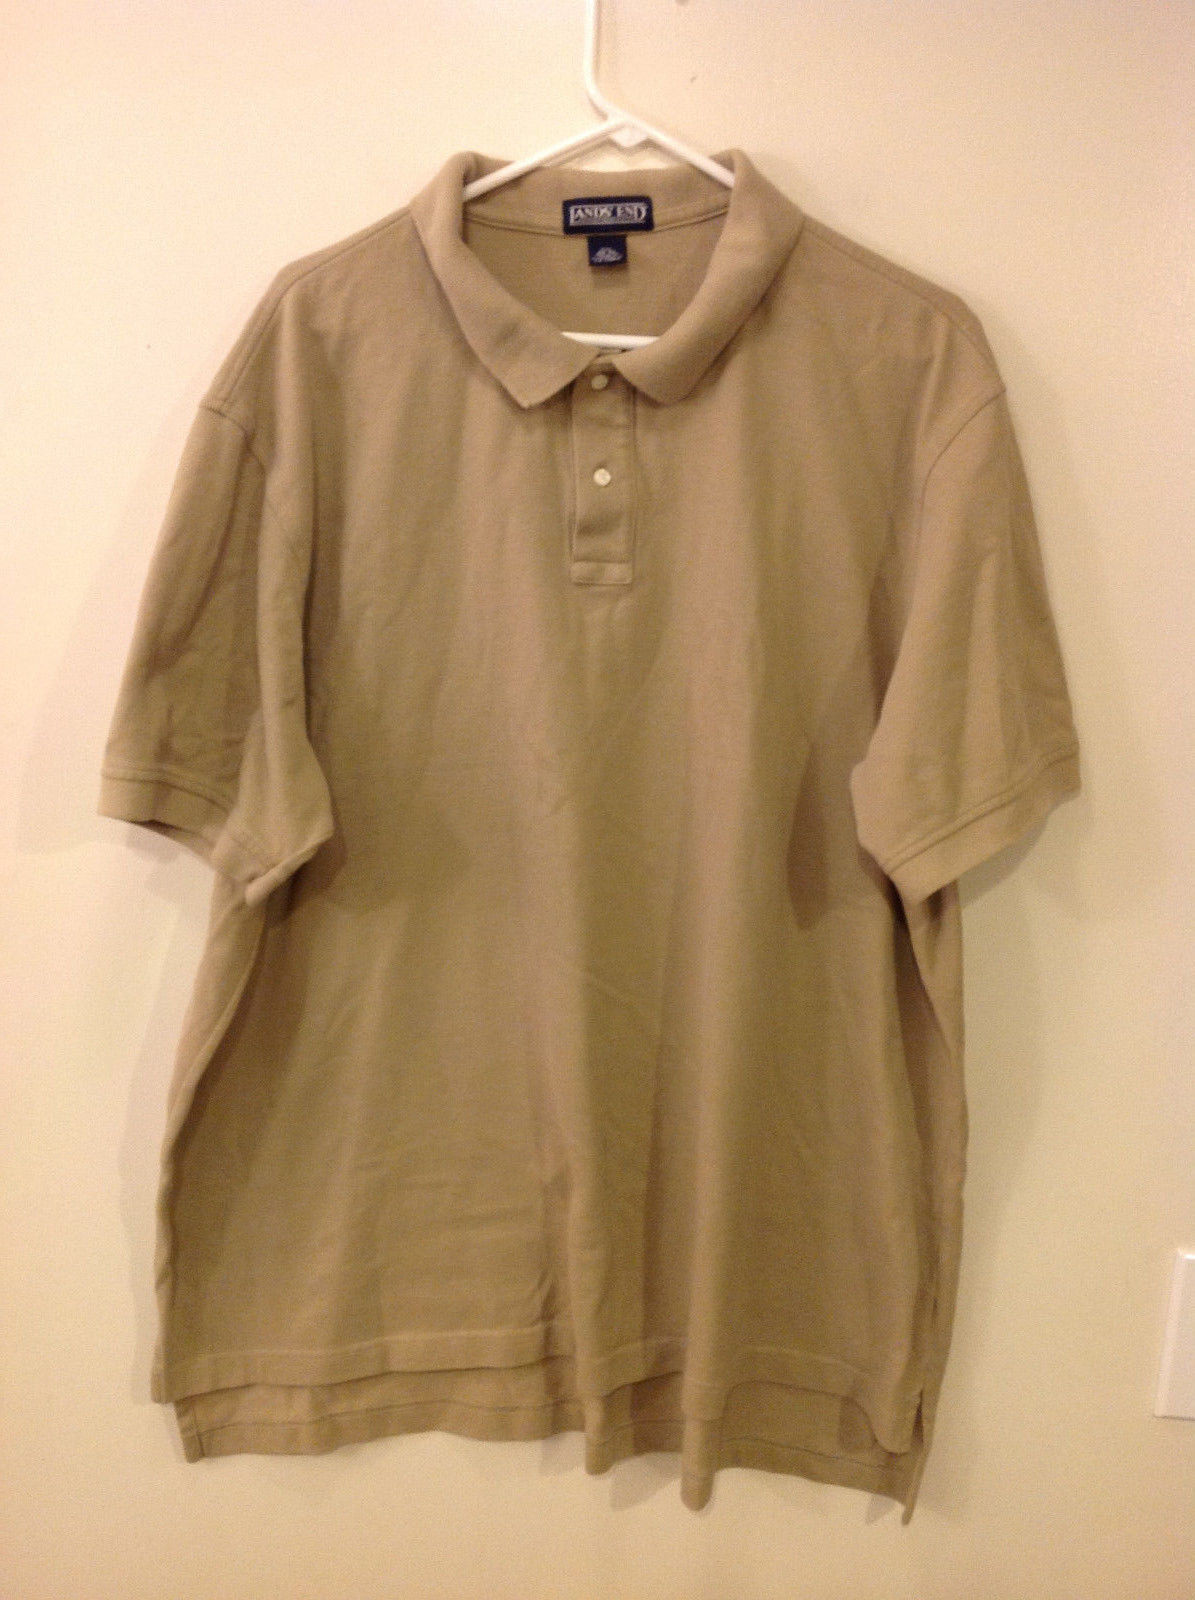 Lands' End Men's Size XXL 50-52 Pique Polo Shirt Wheat Brown w/ Short Sleeves